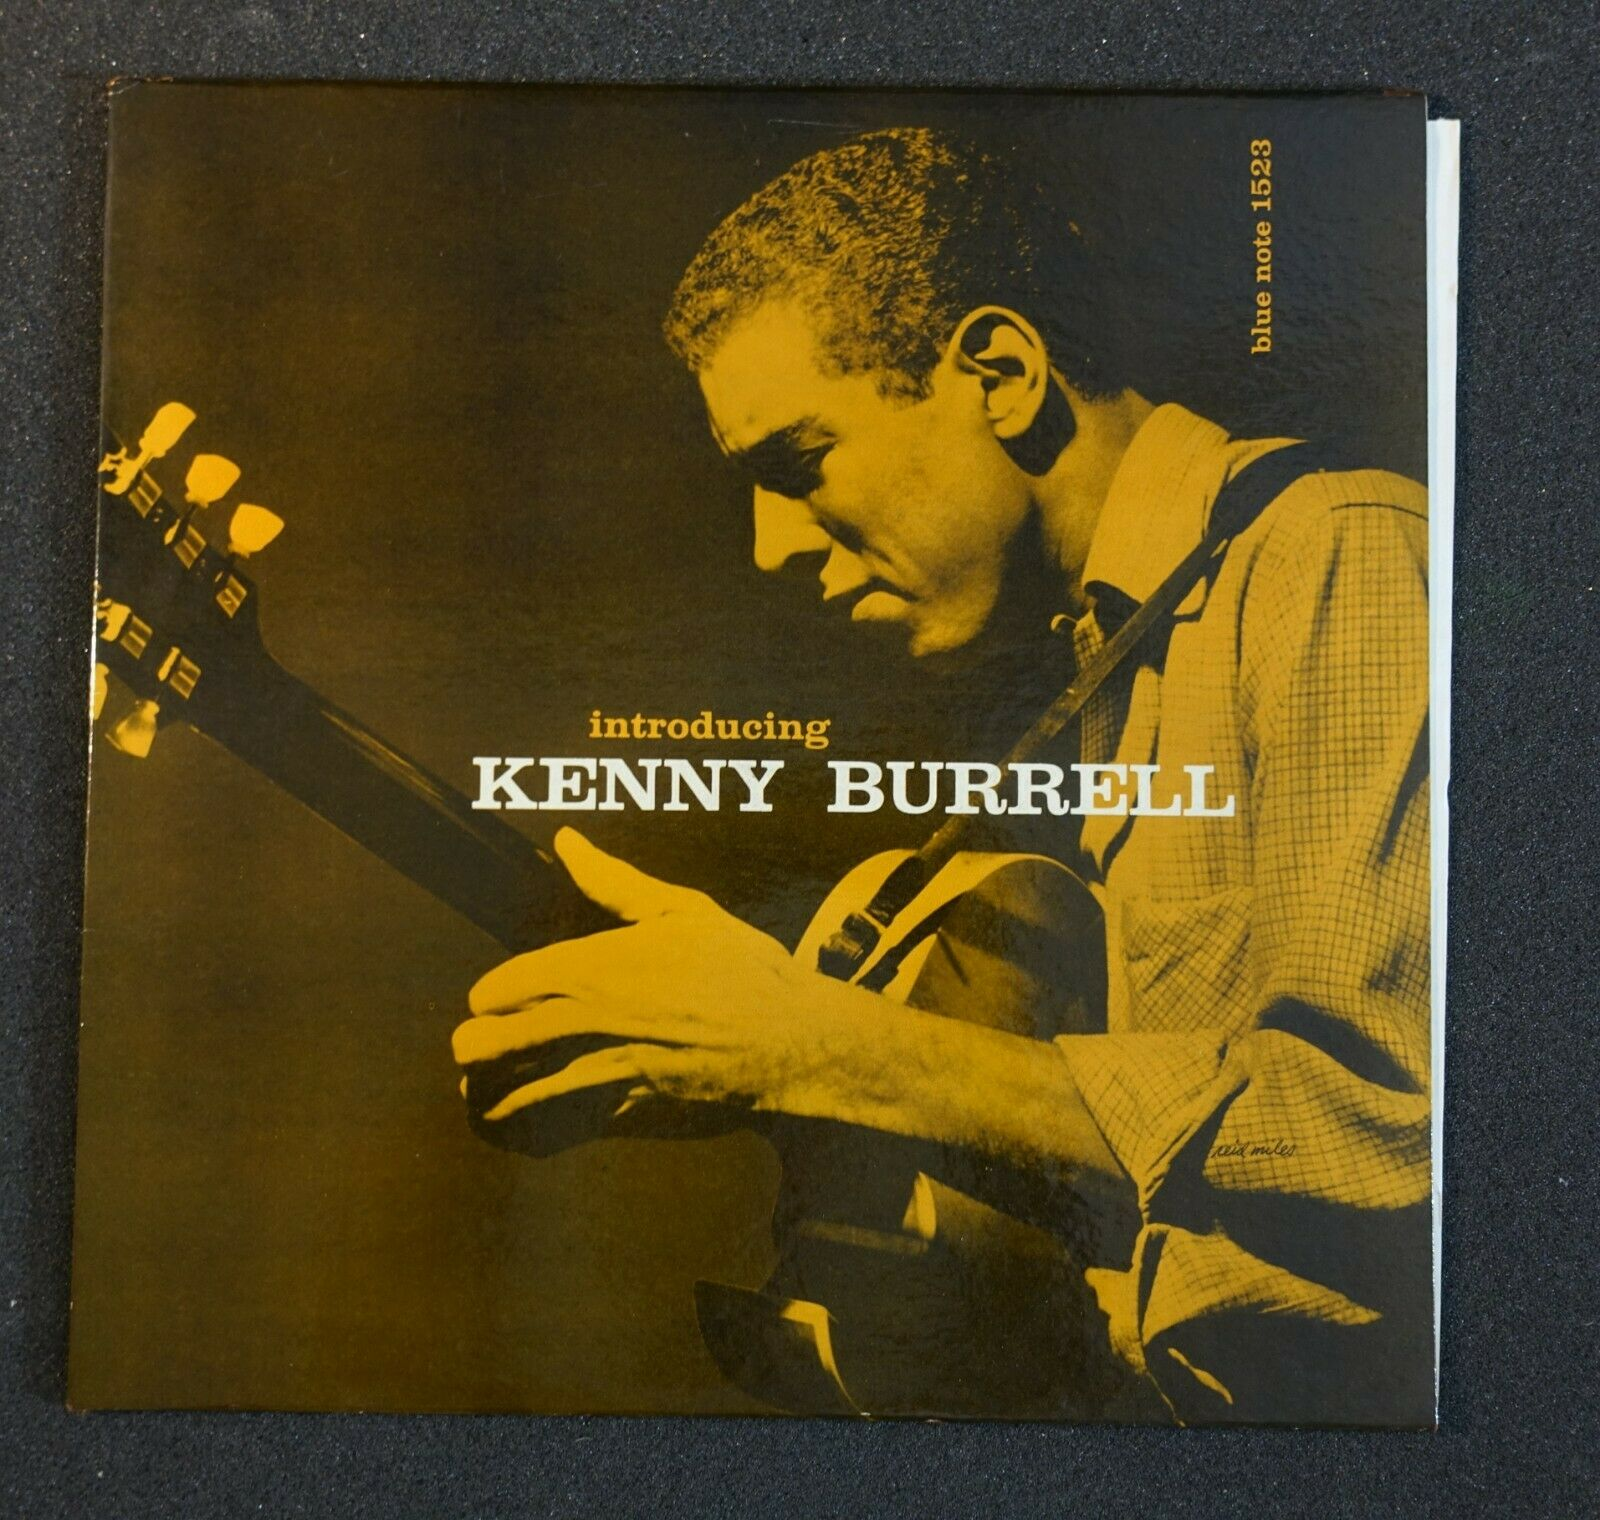 KENNY BURRELL QUINTET 'INTRODUCING KENNY BURRELL' BLP1523, LEX.RVGe,DG. ED1.NM